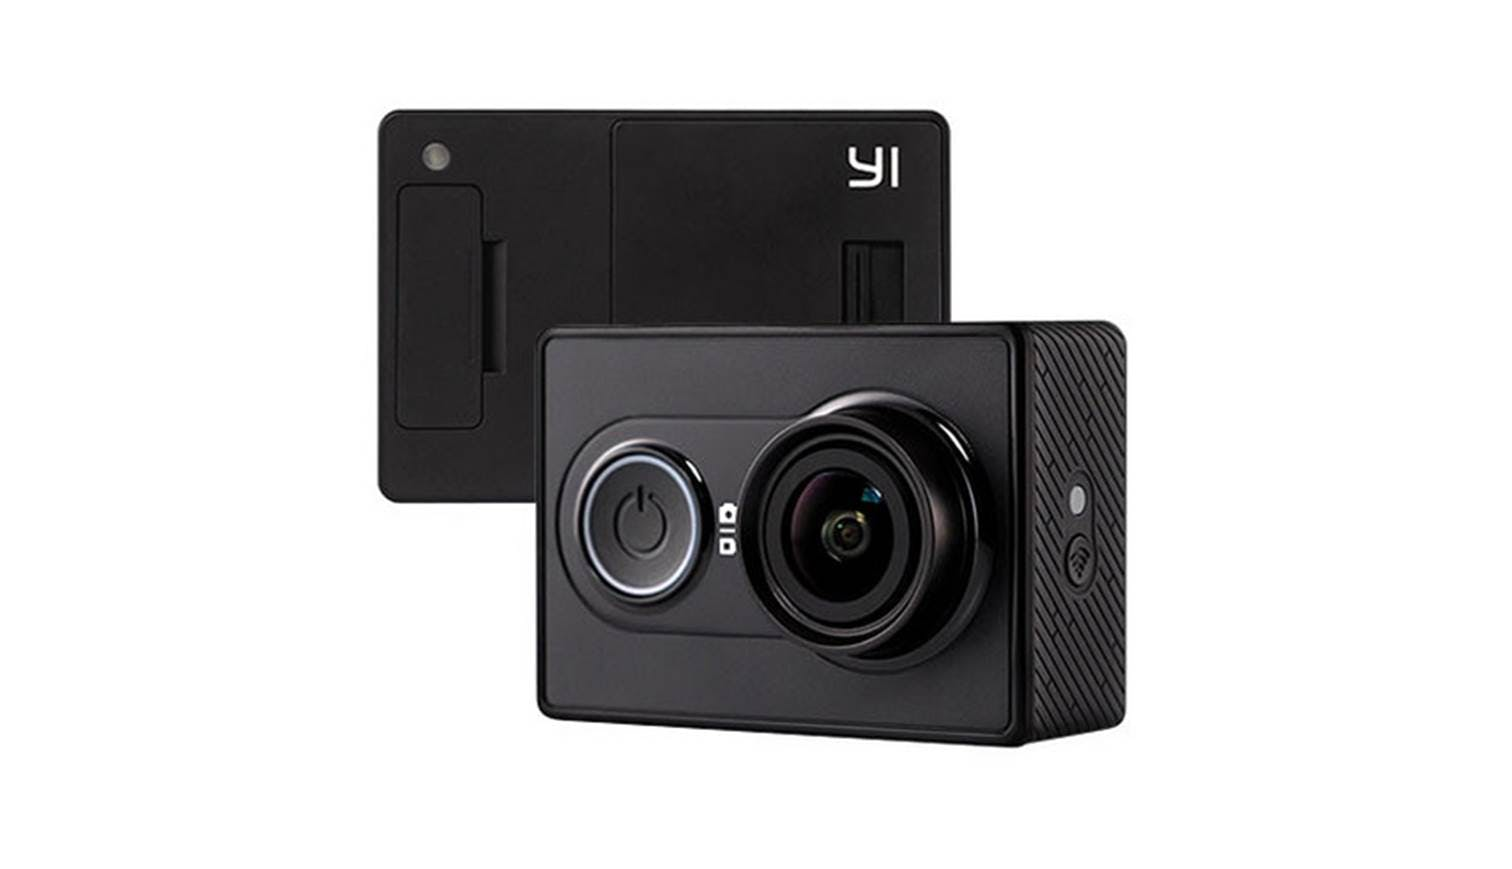 xiaomi yi action camera with bluetooth set black. Black Bedroom Furniture Sets. Home Design Ideas